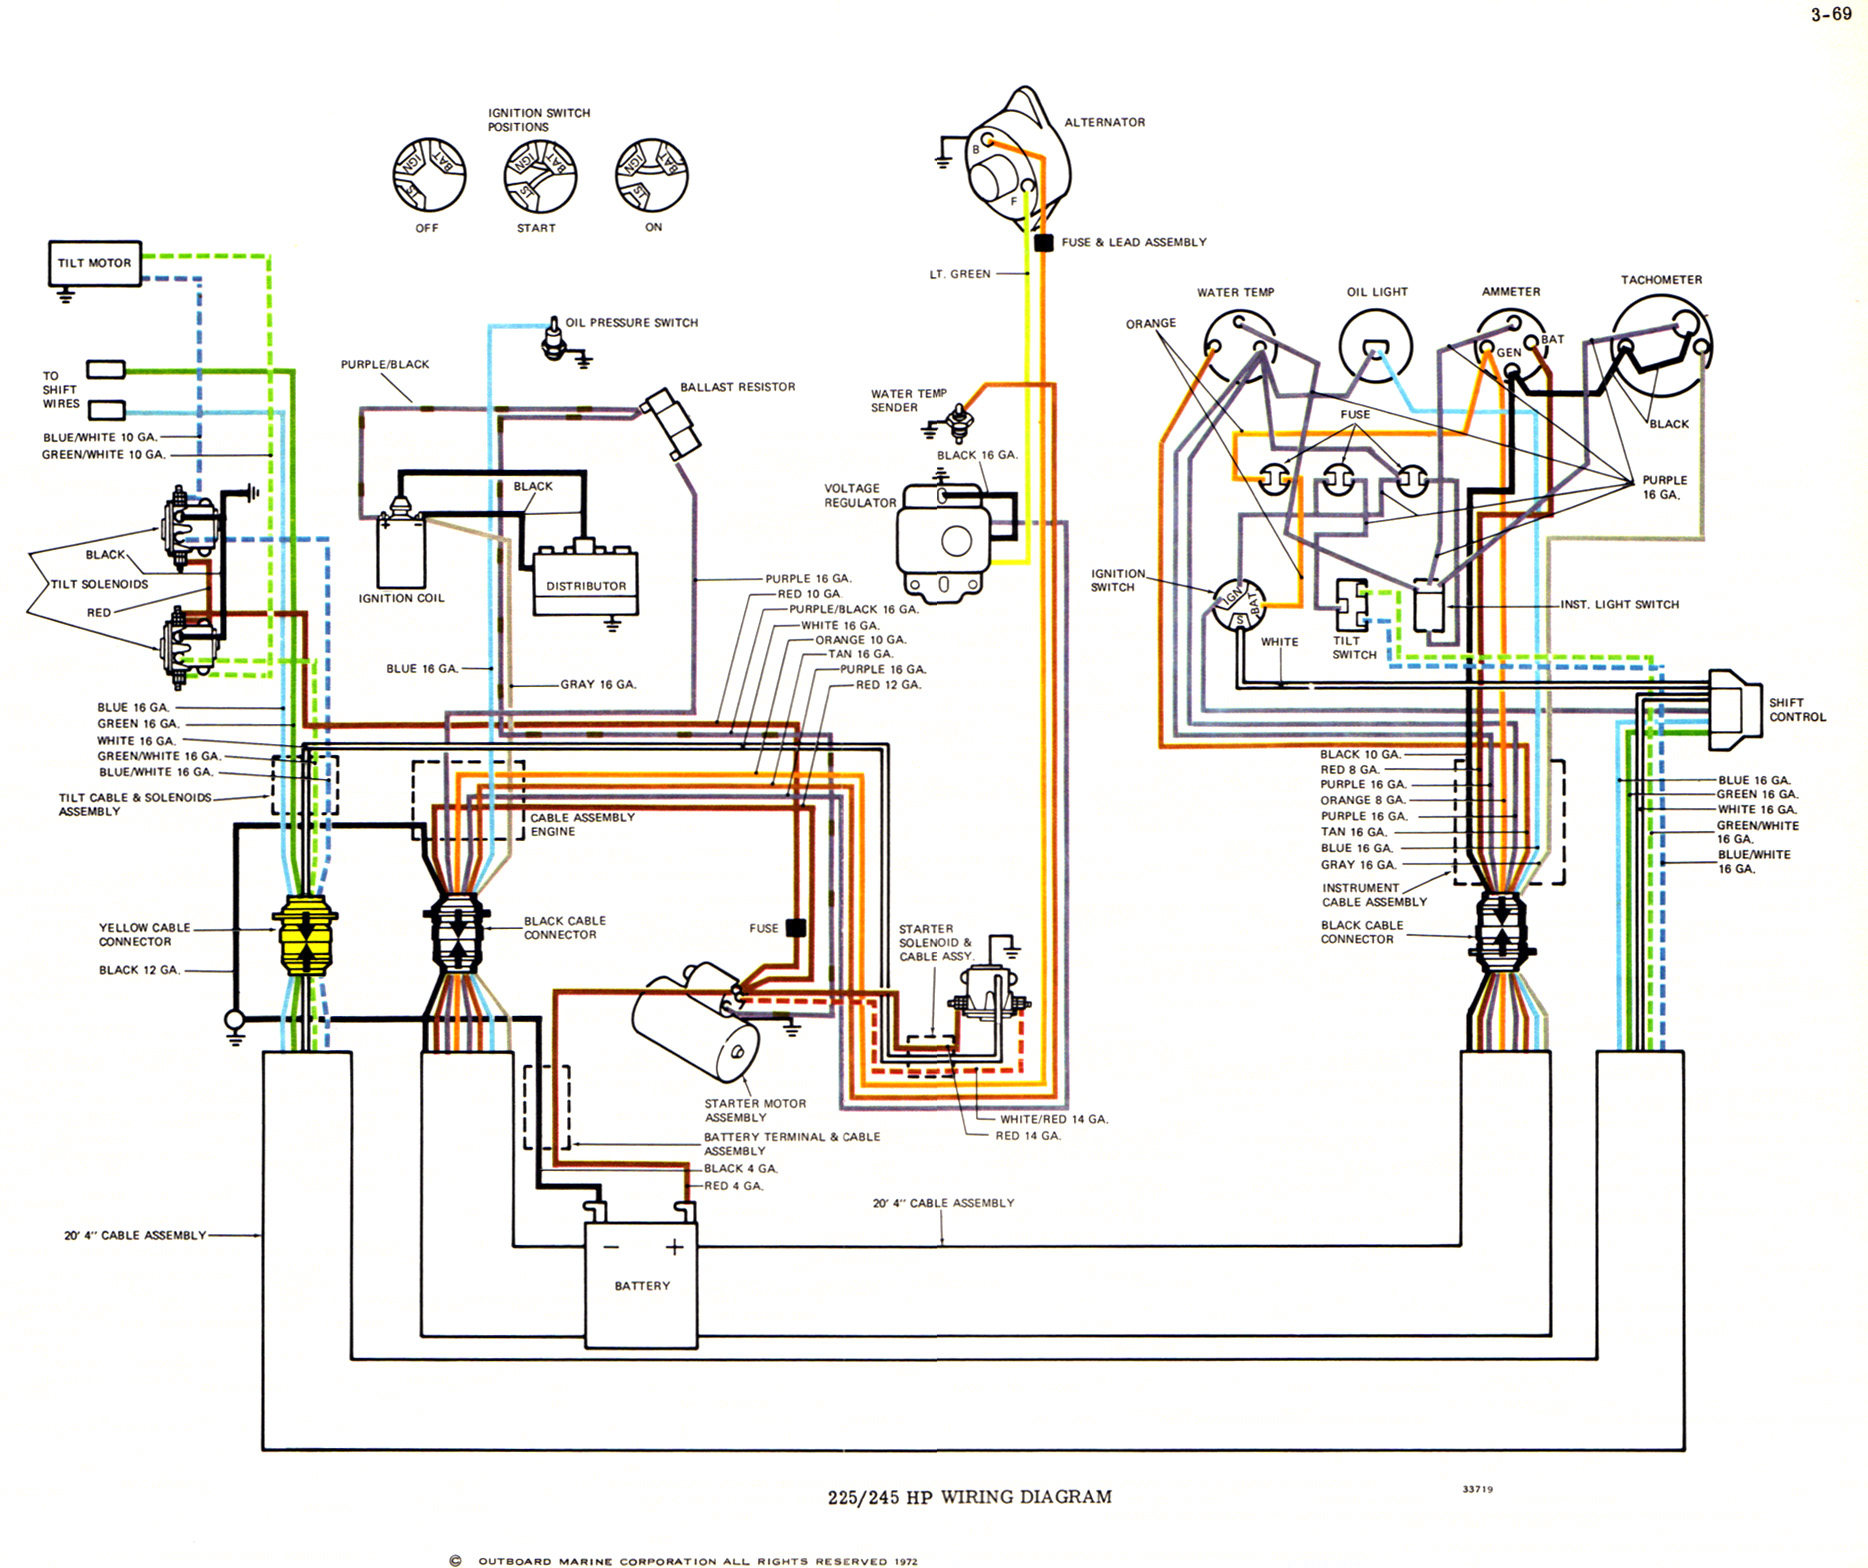 73_OMC_V8_all_big omc wiring diagram basic boat wiring schematic \u2022 wiring diagrams Mercruiser 5.0 MPI Diagram at webbmarketing.co